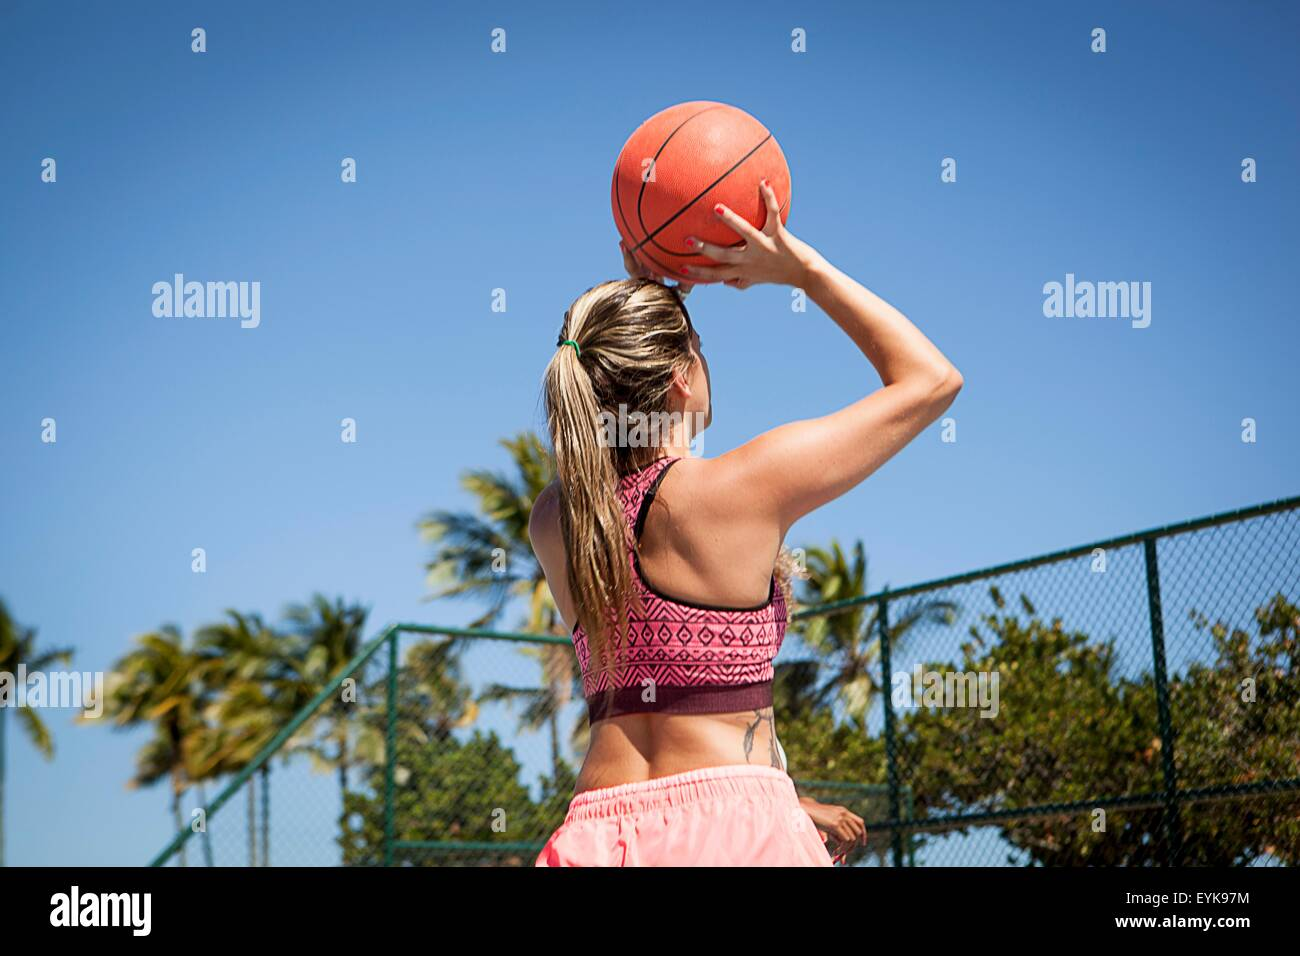 Young woman with basketball, about to take a shot, rear view - Stock Image